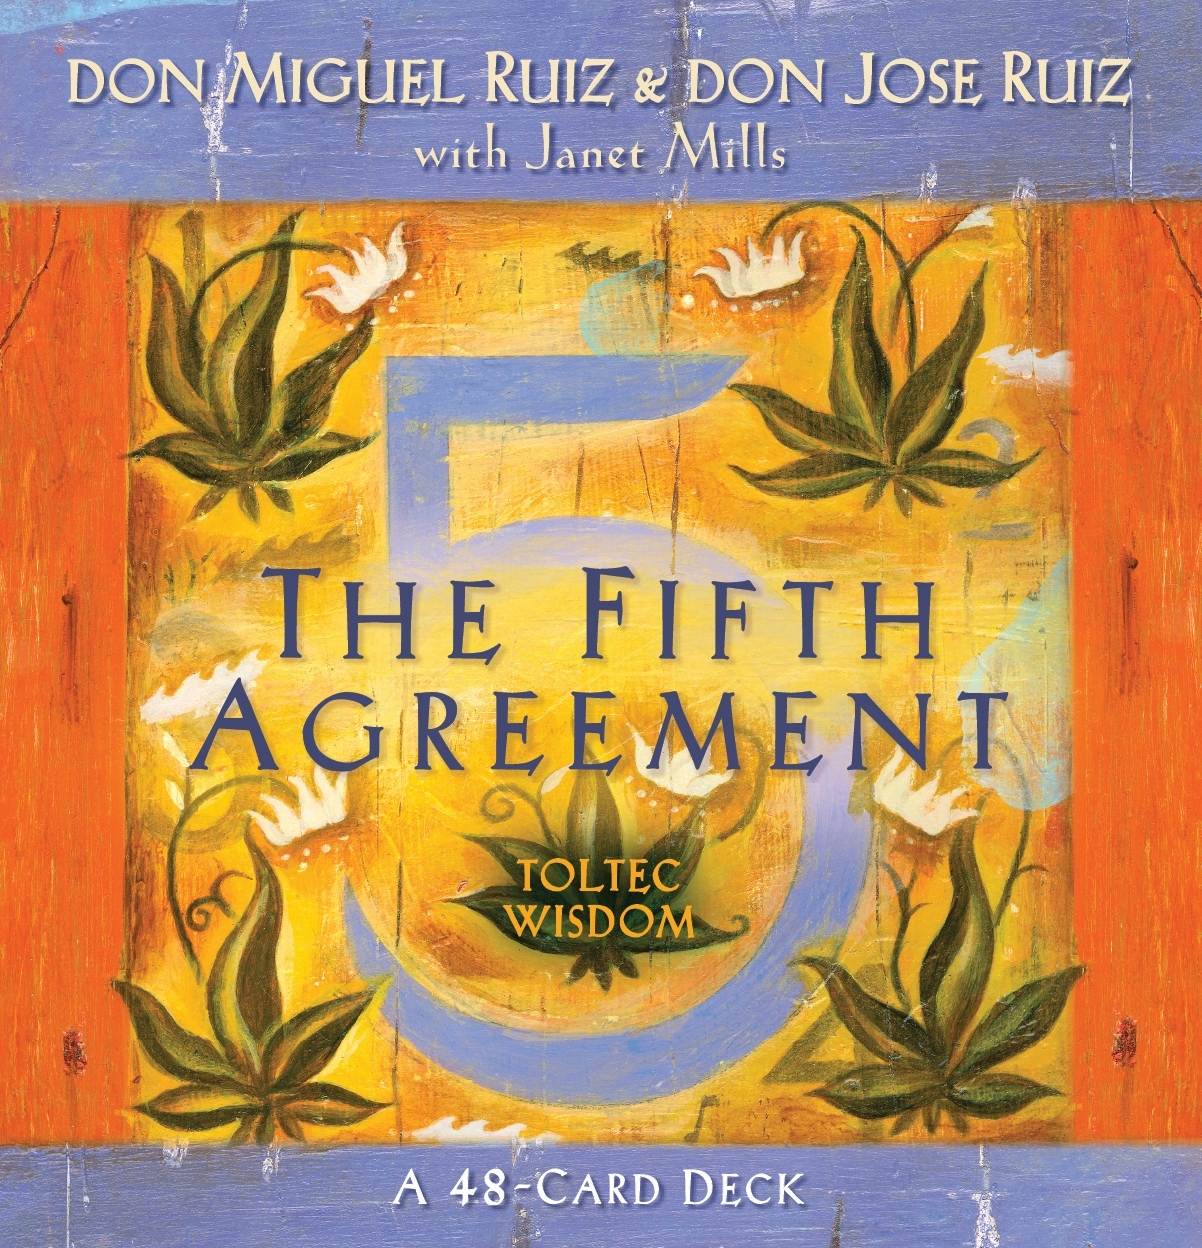 The fifth agreement cards by don miguel ruiz penguin books australia the fifth agreement cards platinumwayz